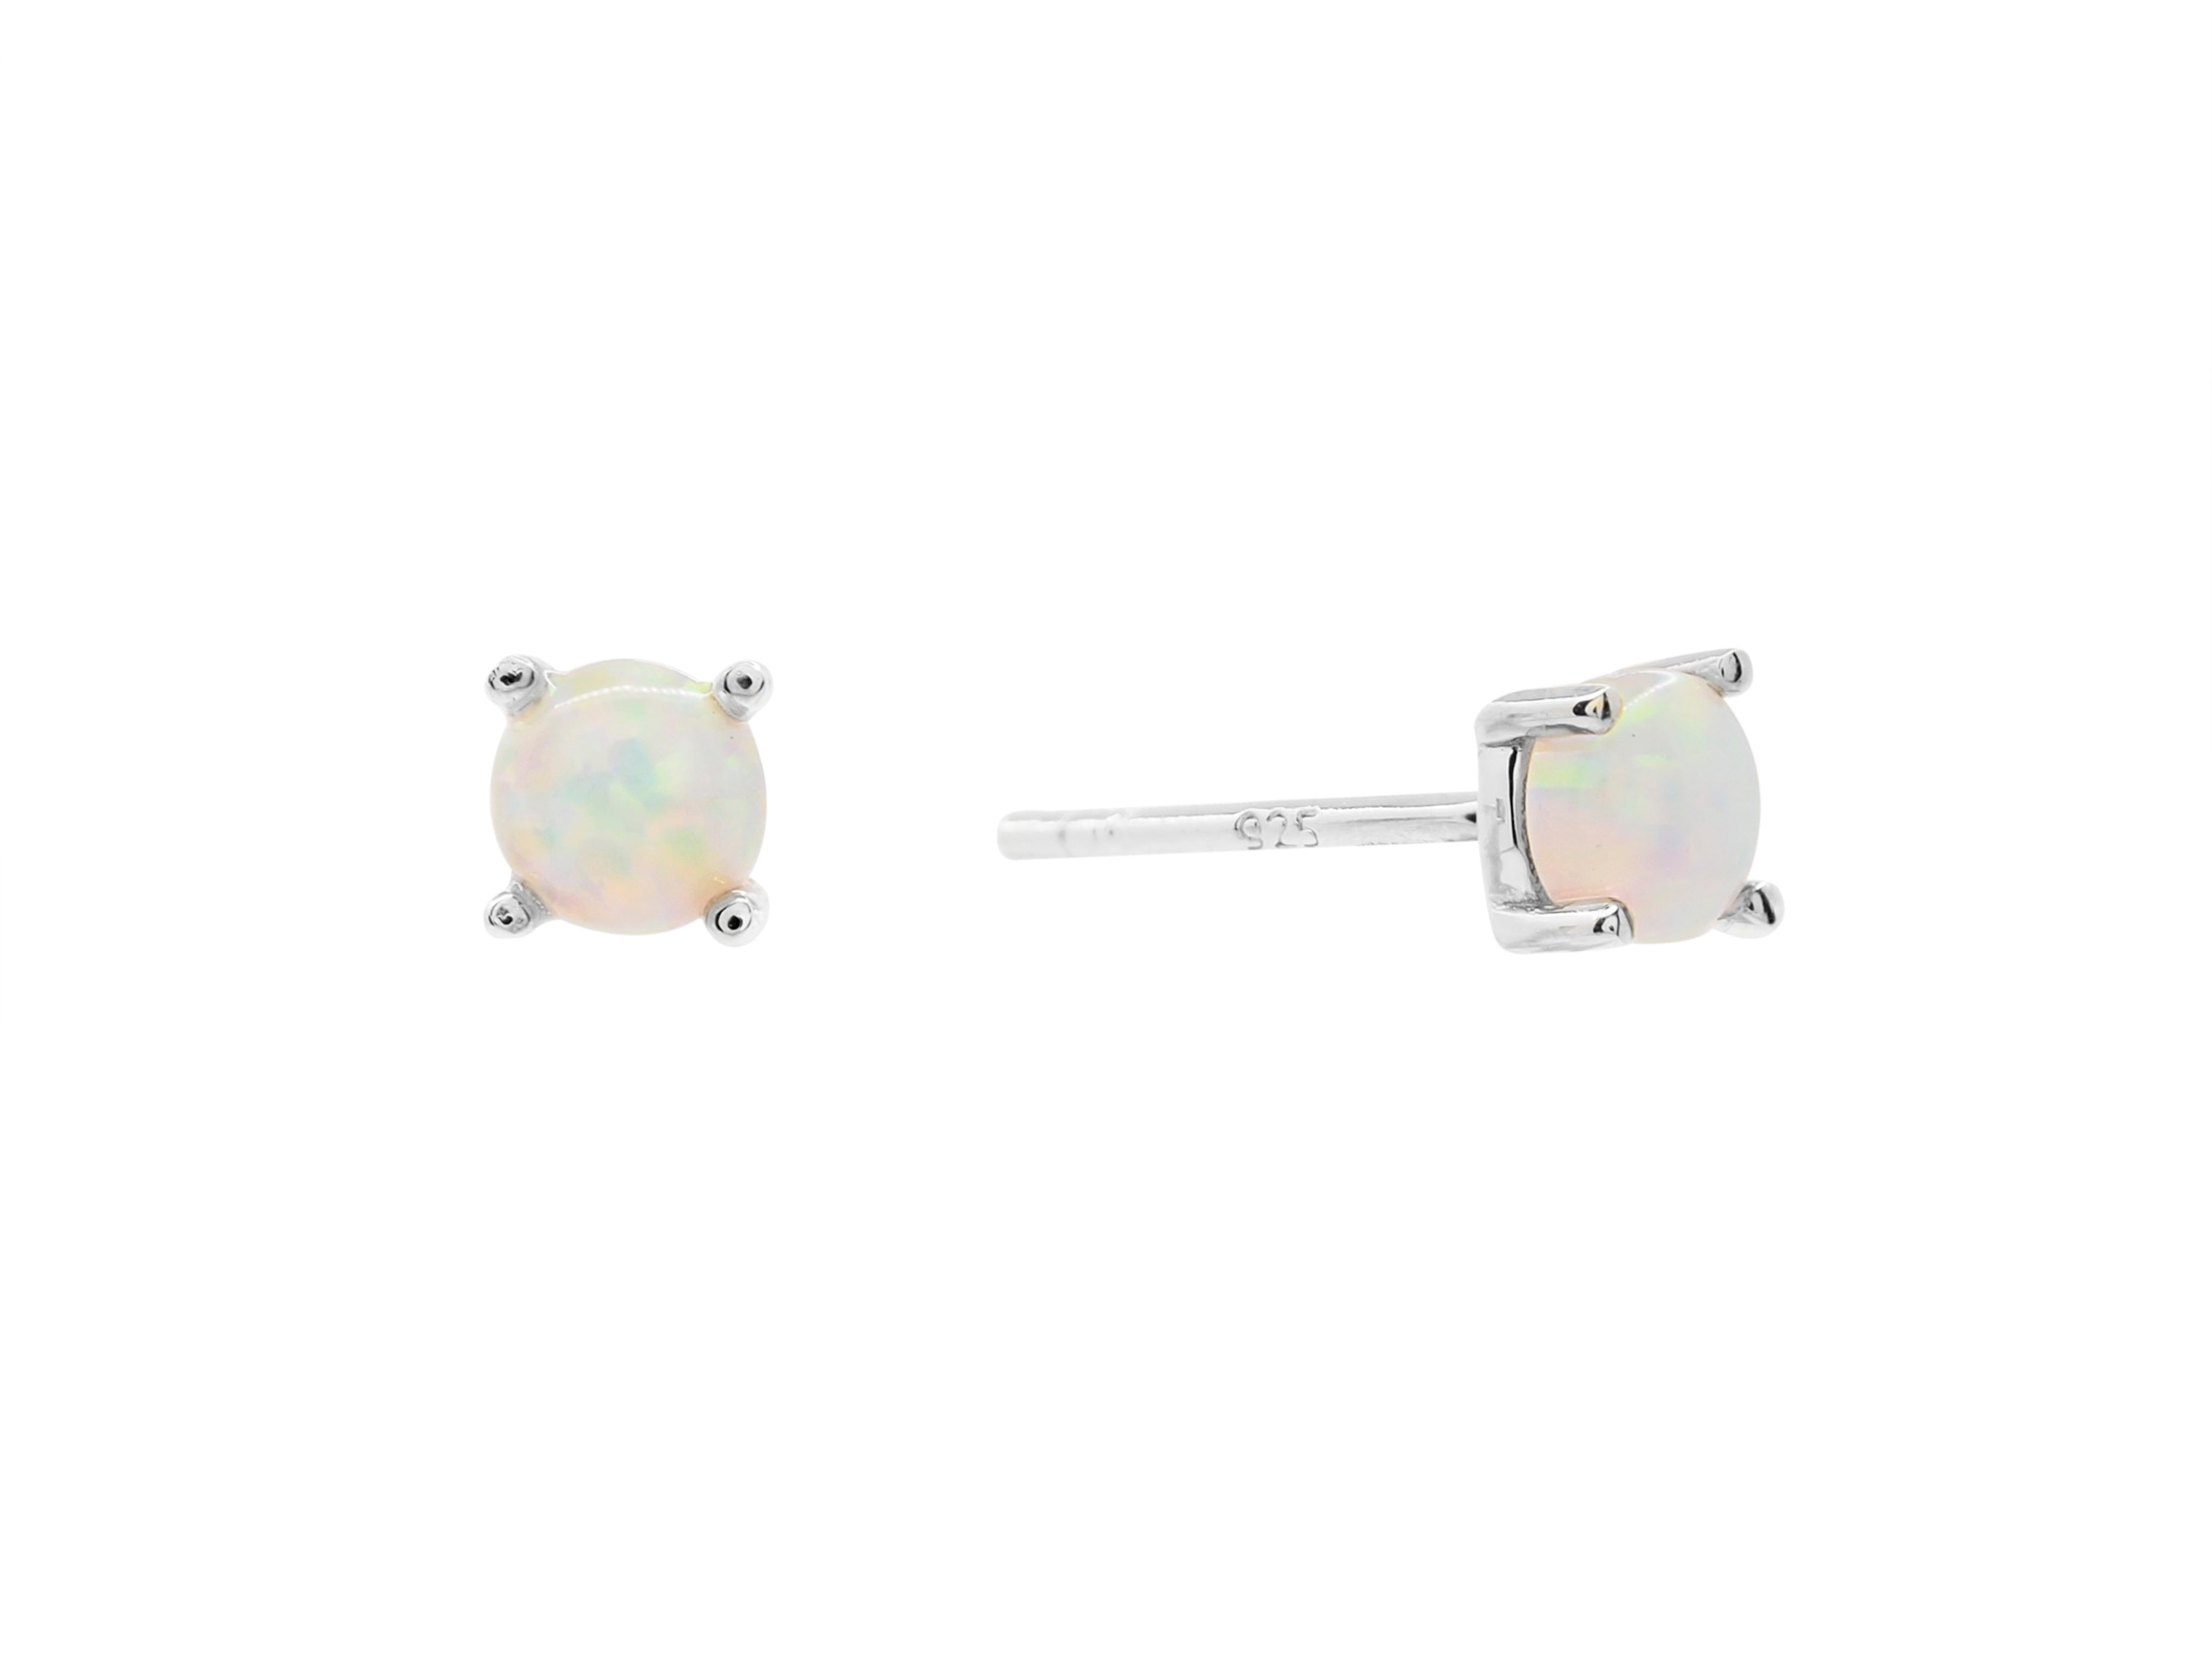 Castle Rock Opal Studs - Silver (Rhodium Plated)